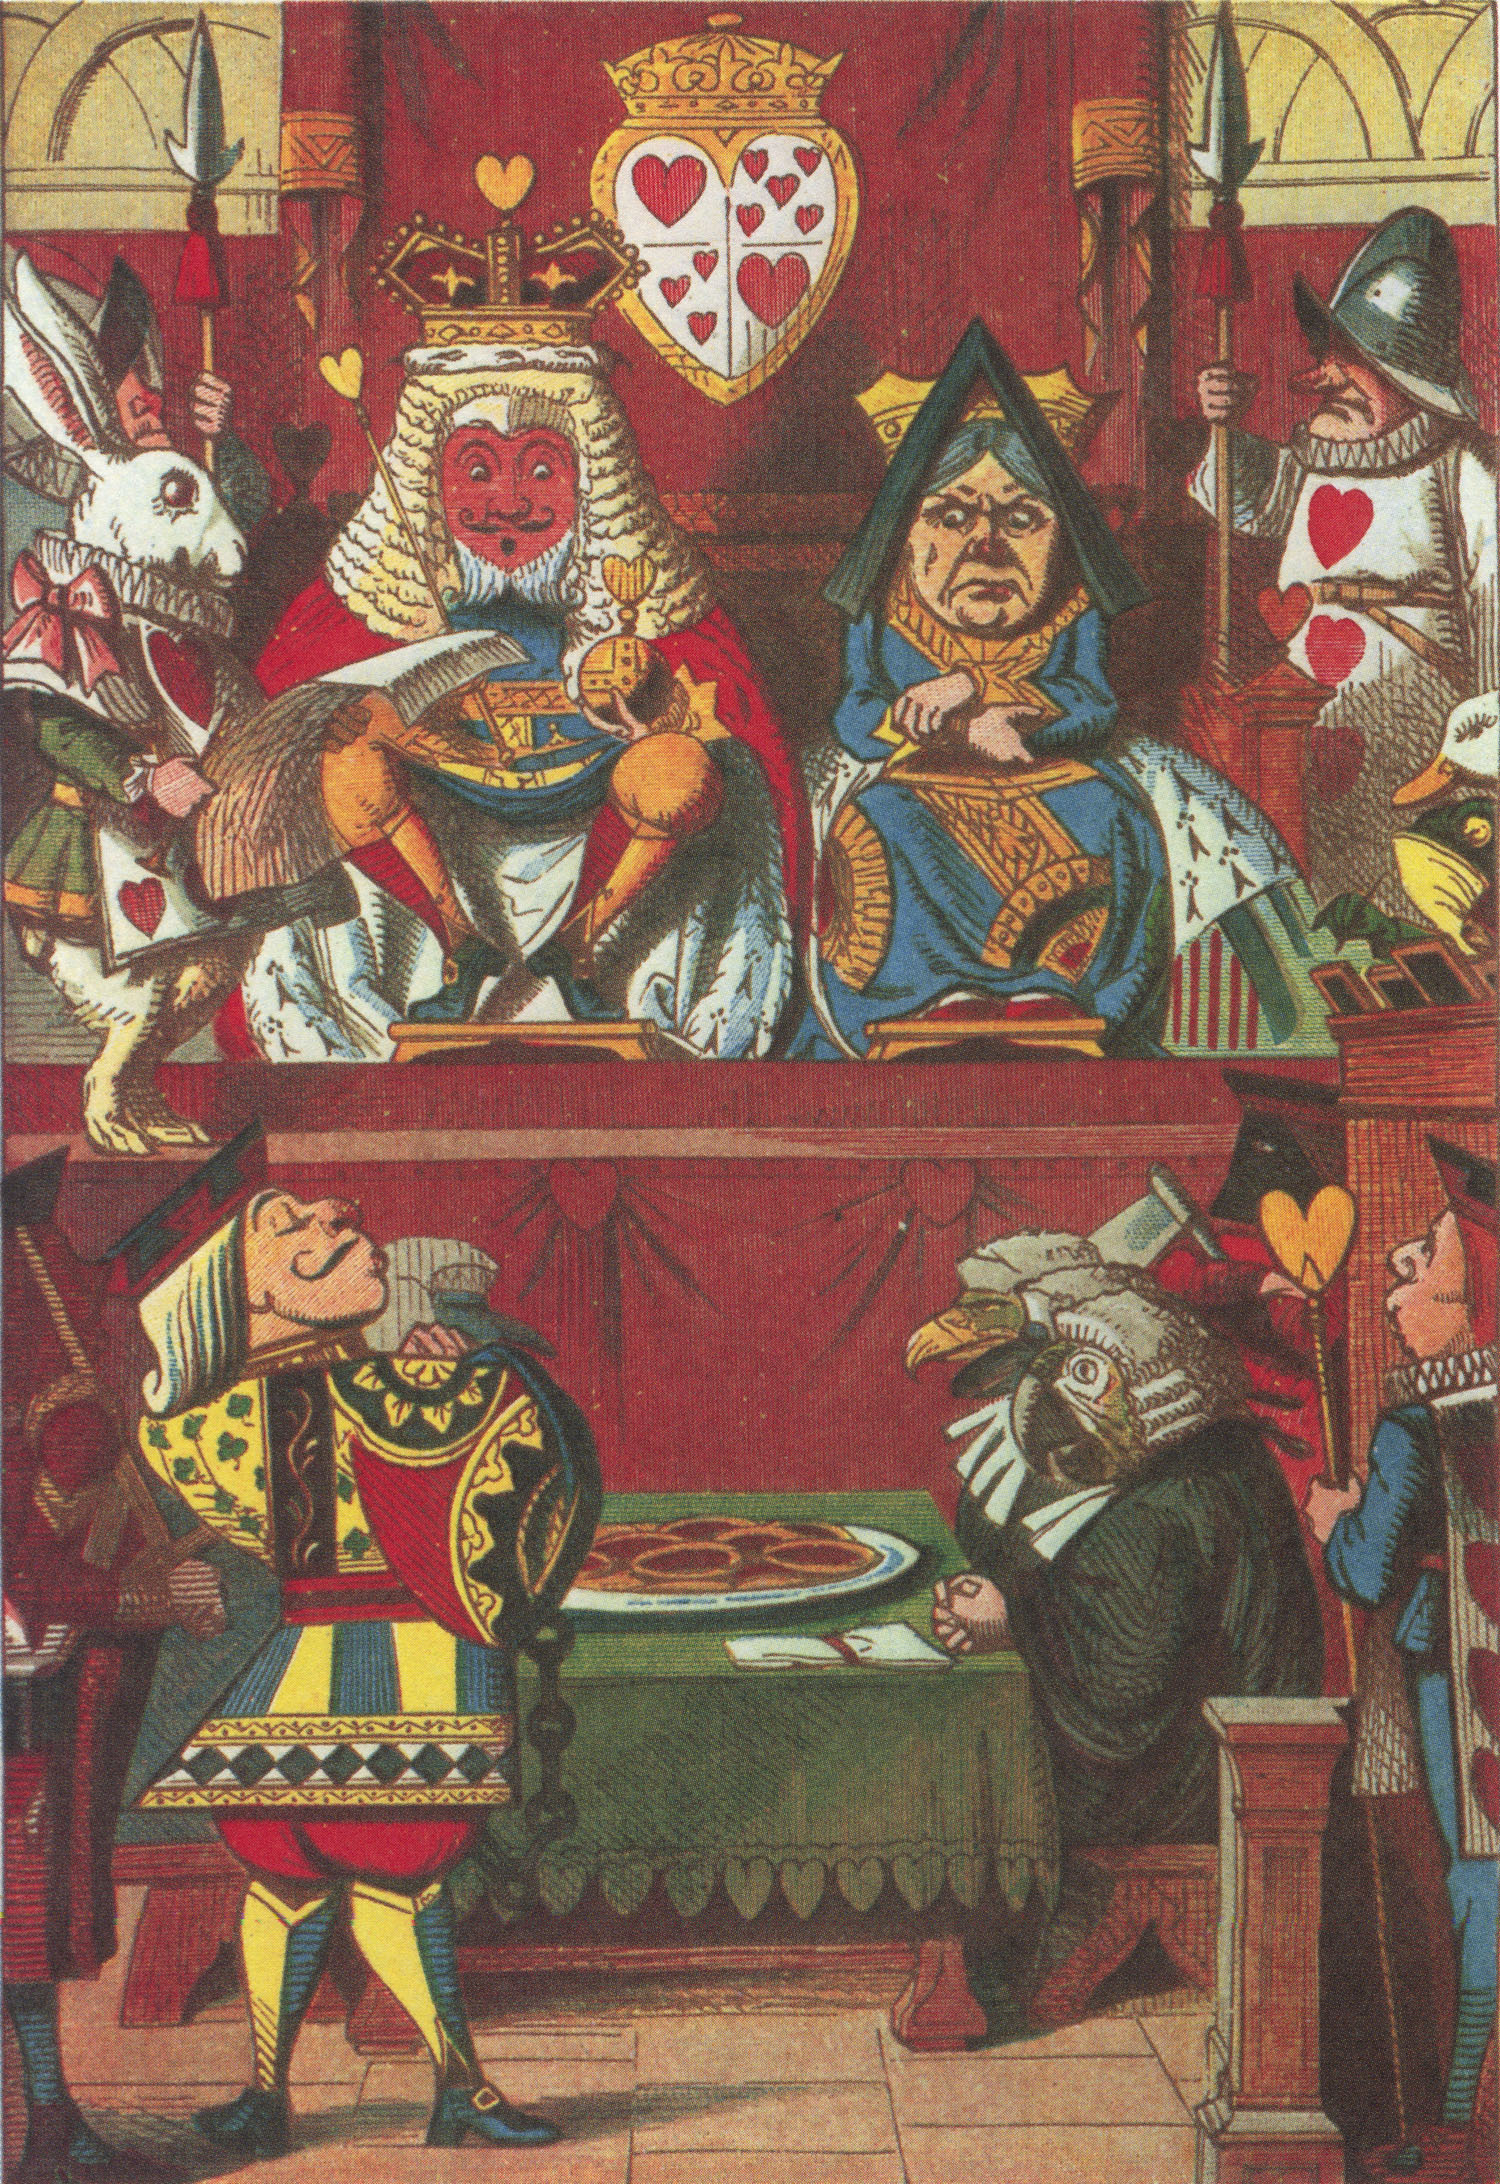 King and Queen of Hearts in court, colored